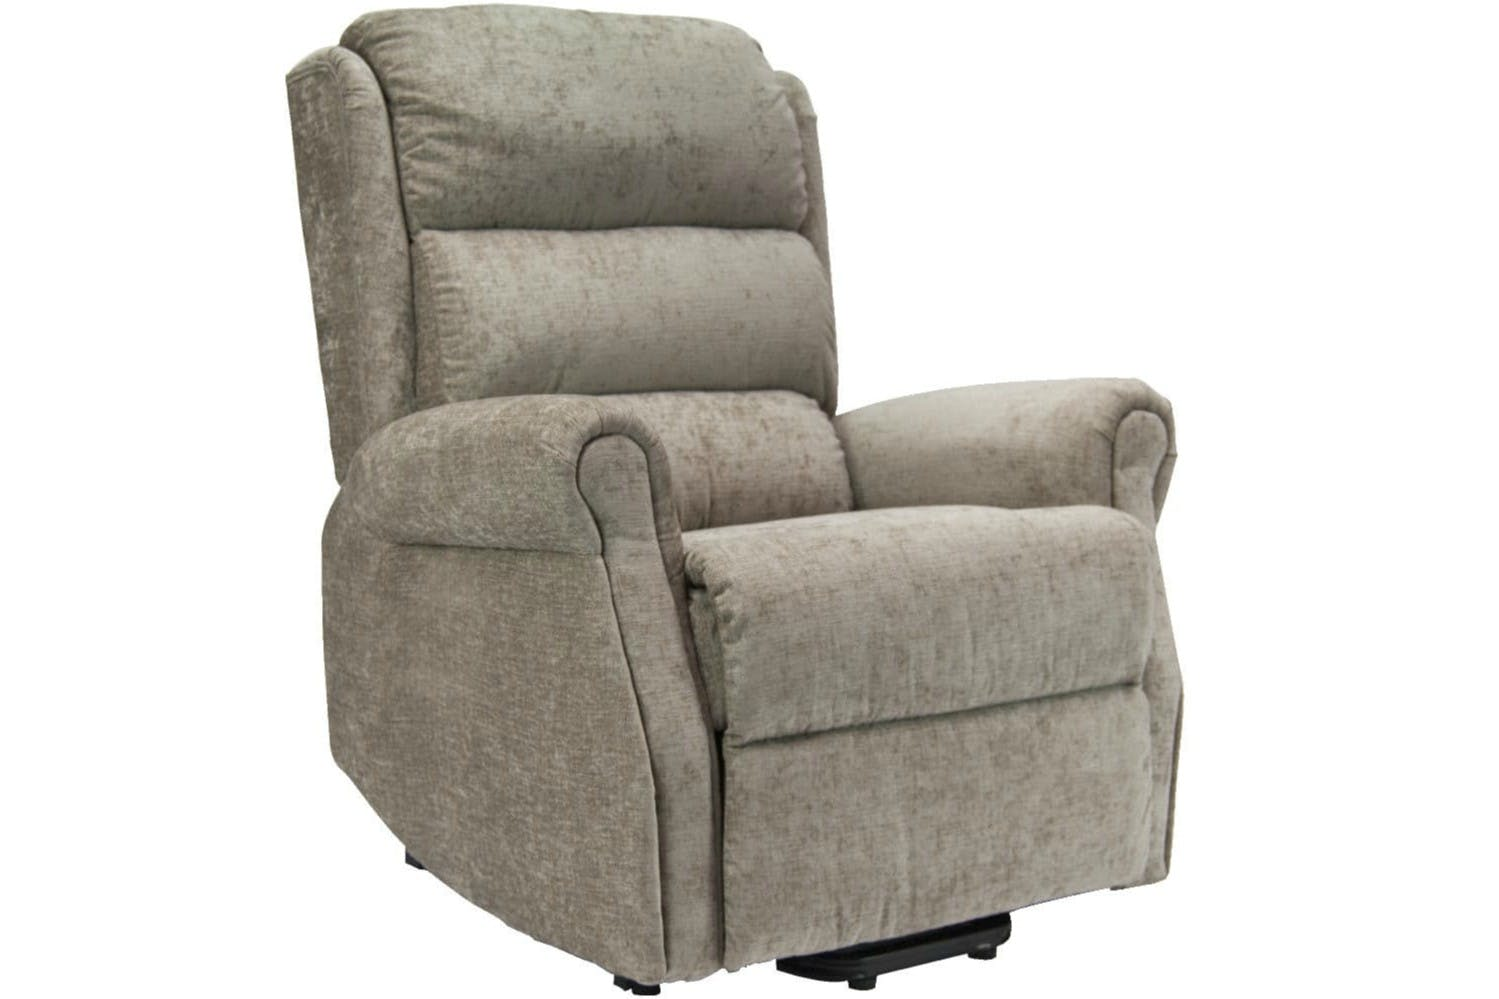 Hudson Recliner Chair Mink Ireland